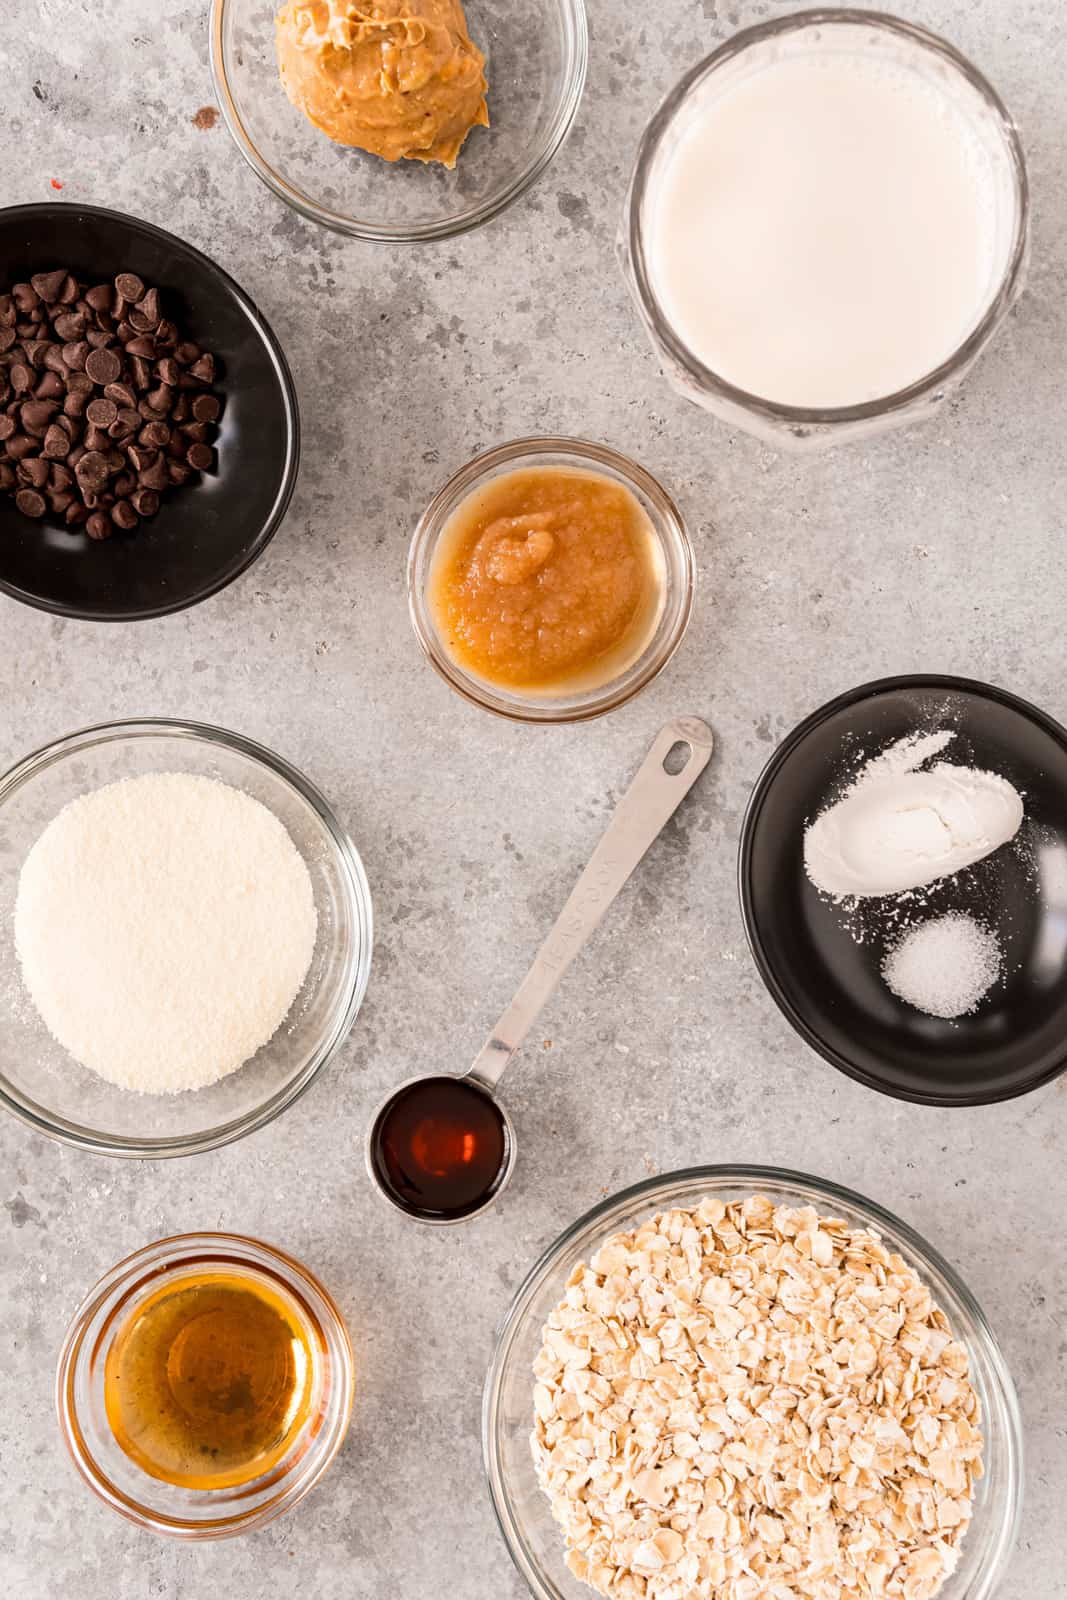 Ingredients needed to make Baked Oats